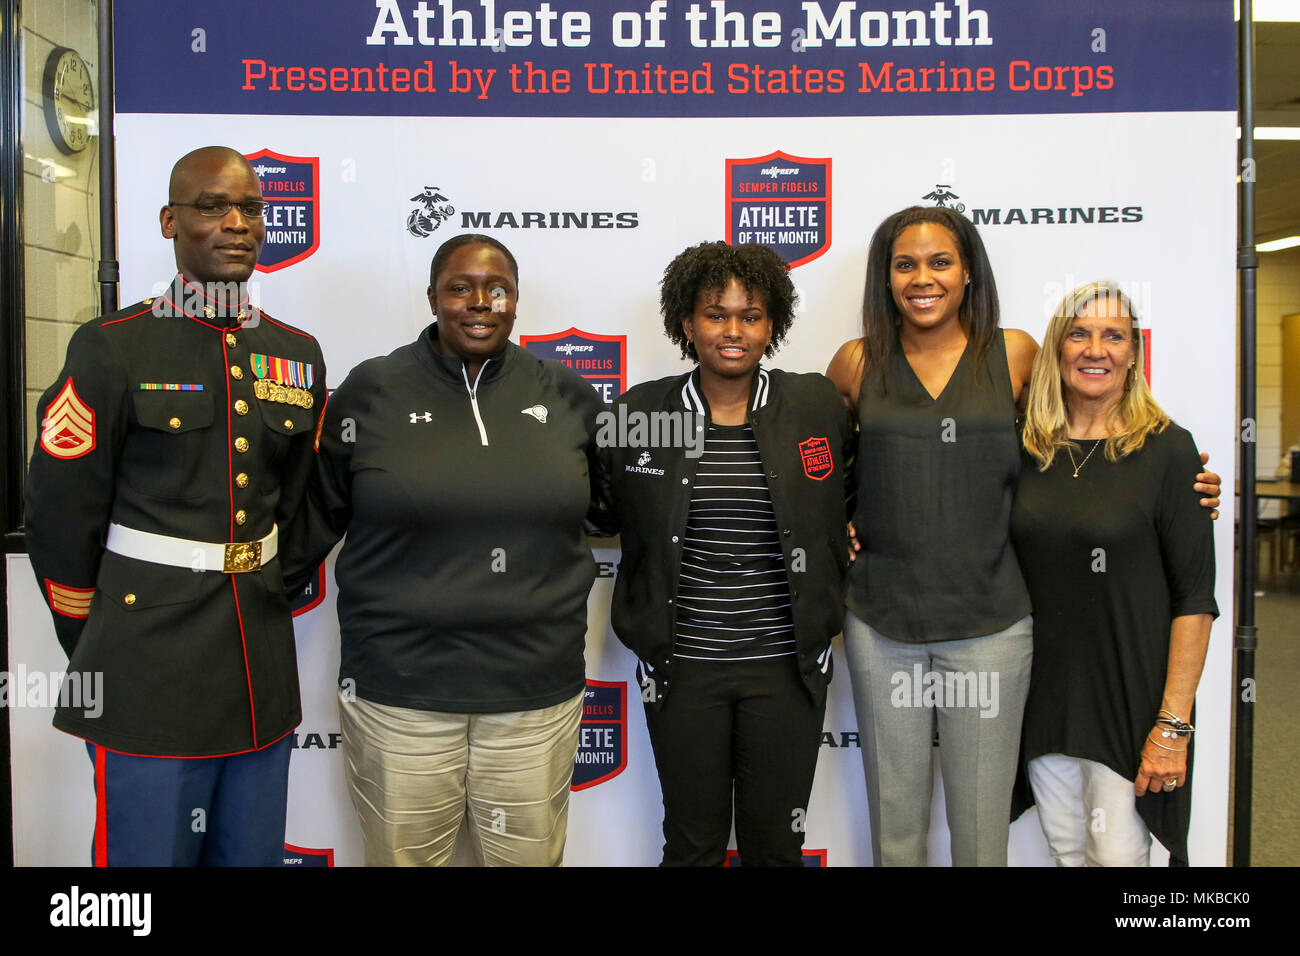 Athlete Of The Month Stock Photos & Athlete Of The Month